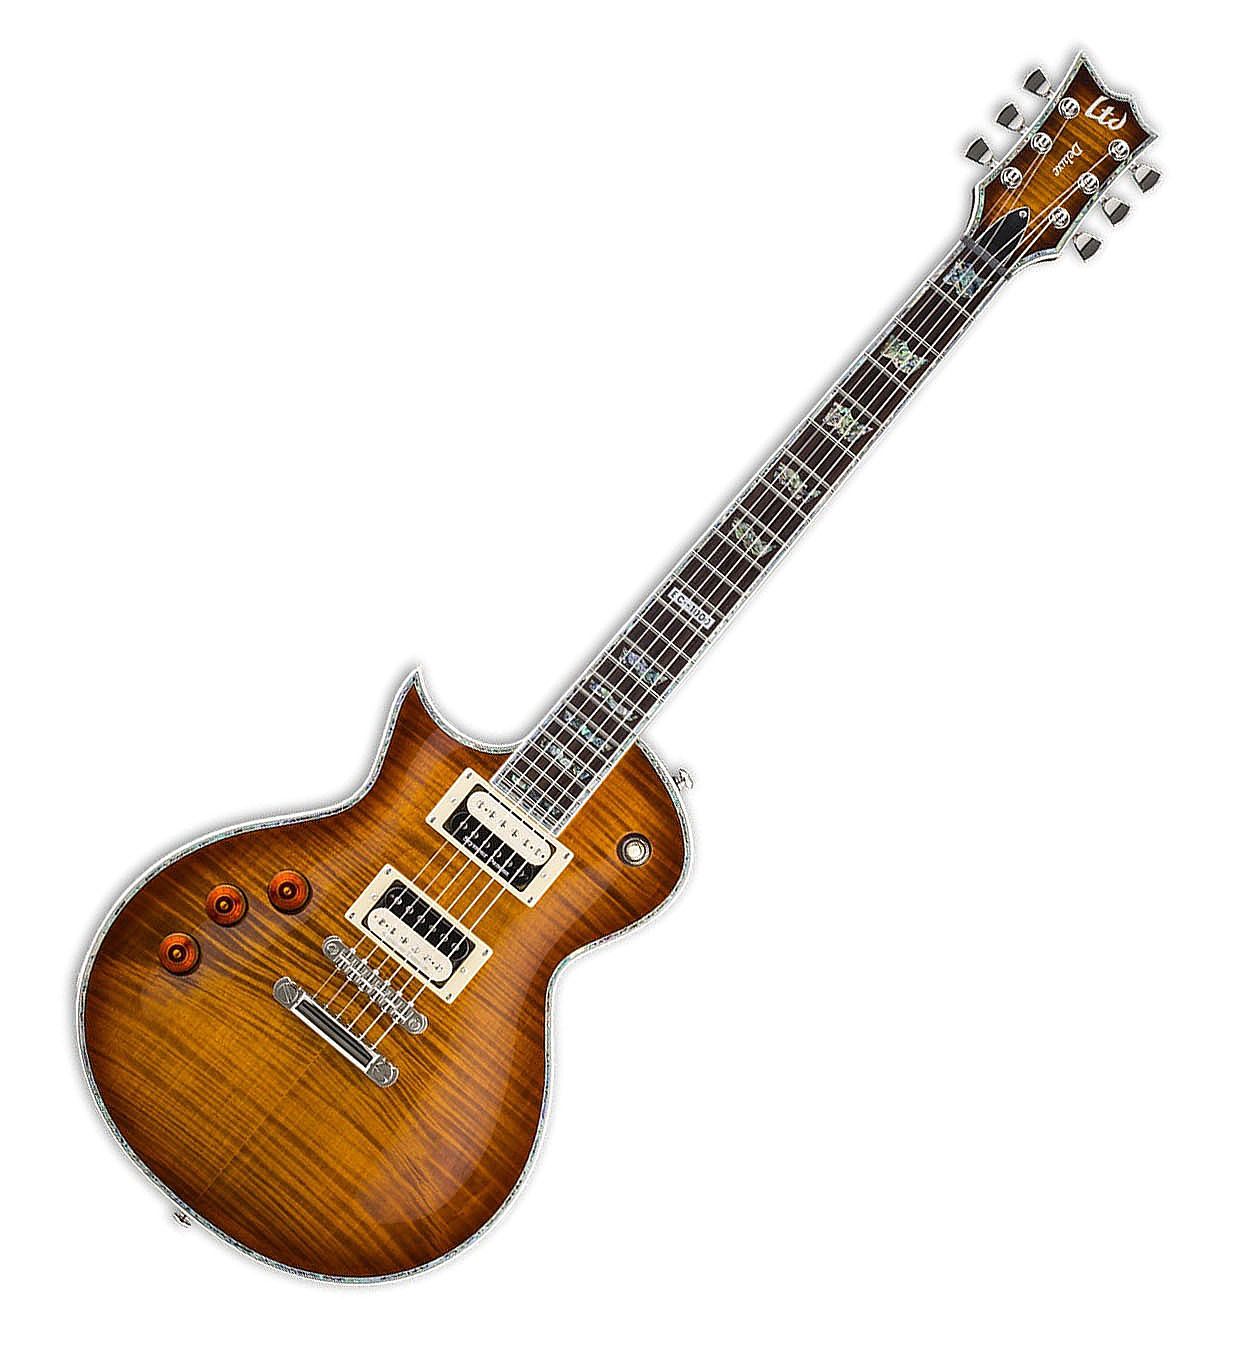 ESP LTD EC-1000FM ASB LH EC Series Electric Guitar with Flamed Maple Top and Amber Sunburst Finish